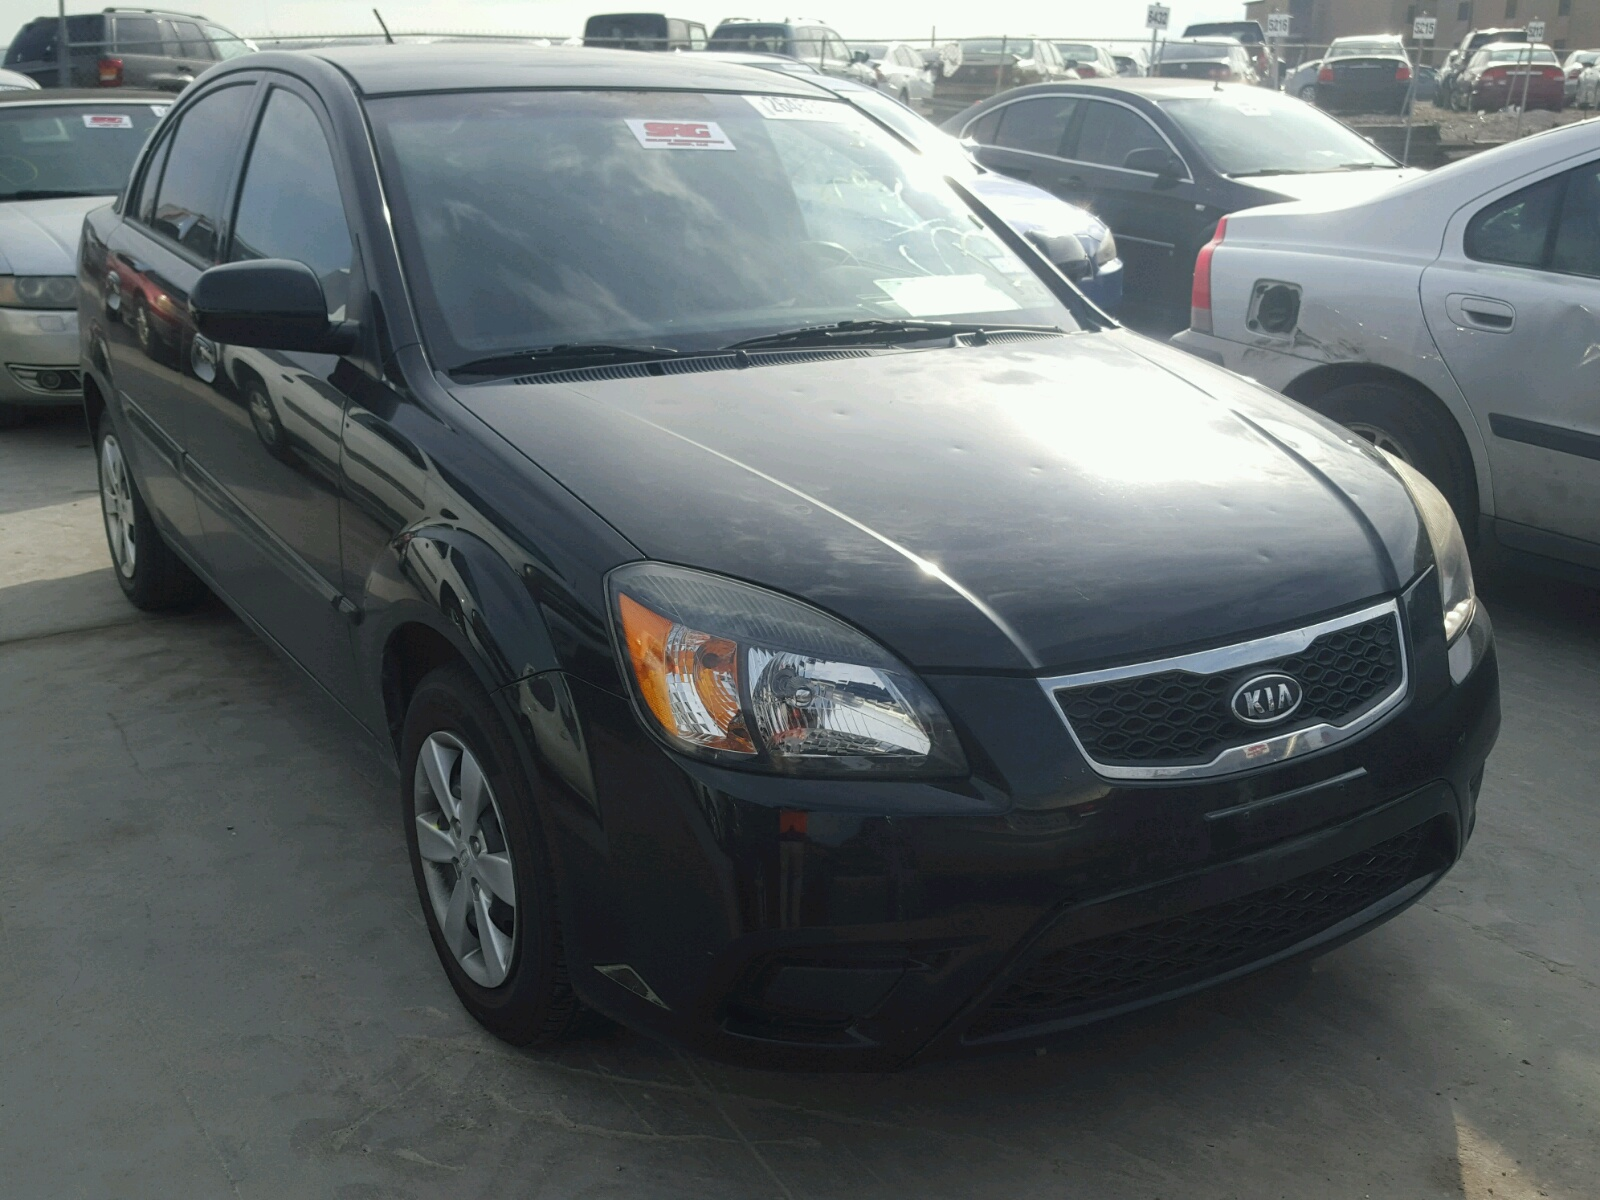 title left lot in optima view tx auctions sale dallas vehicle lx copart kia auto online en on carfinder salvage gray